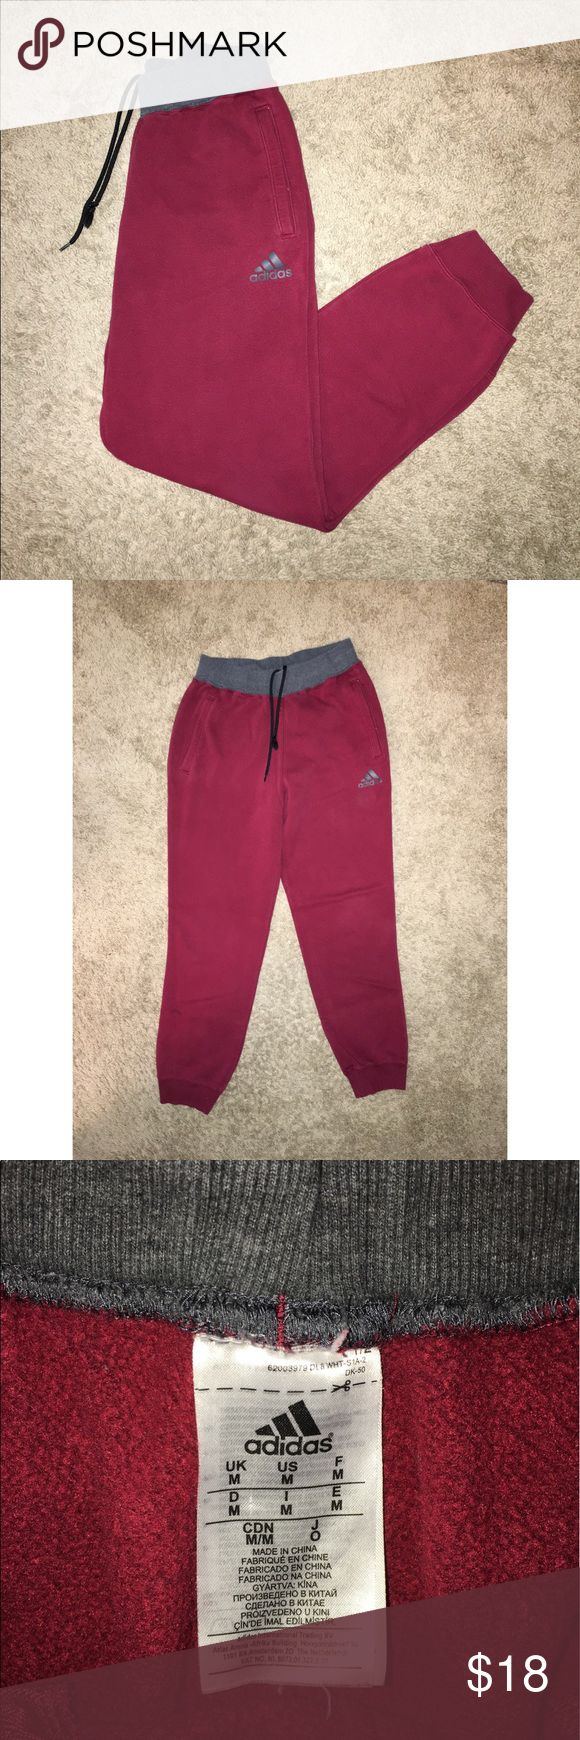 Adidas Mens Sweatpants Pockets, Drawstrings, Adidas Mens Sweatpants/Joggers. Size Medium adidas Pants Sweatpants & Joggers